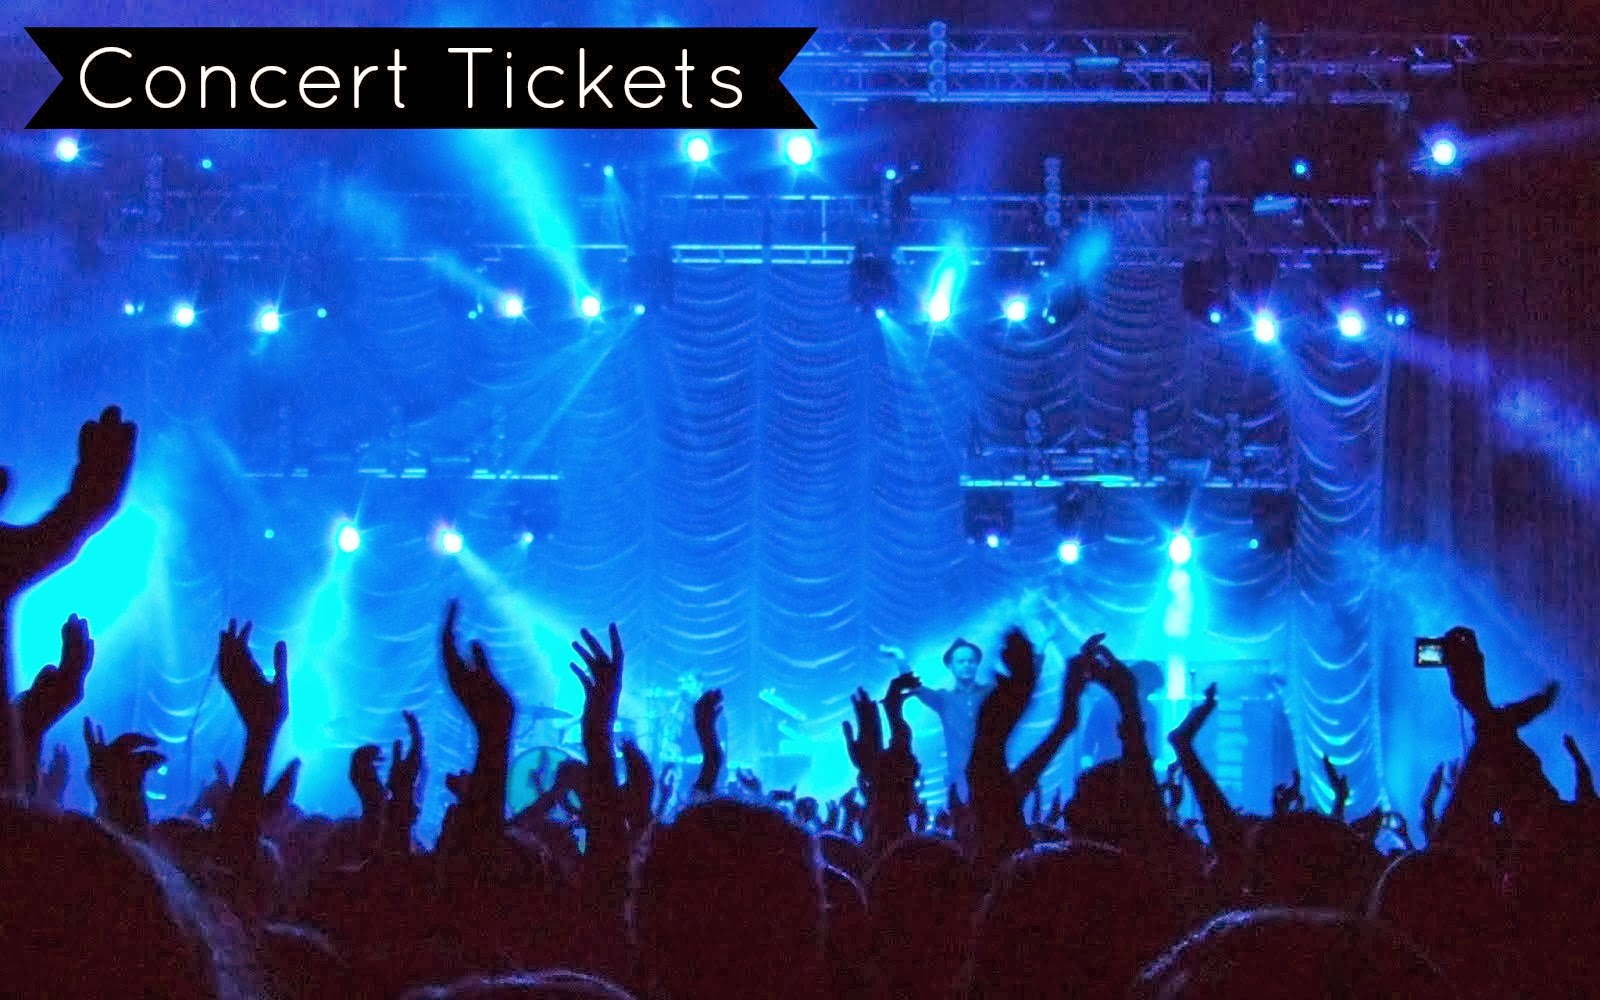 10 Tips for Buying Concert Tickets - Self Sagacity